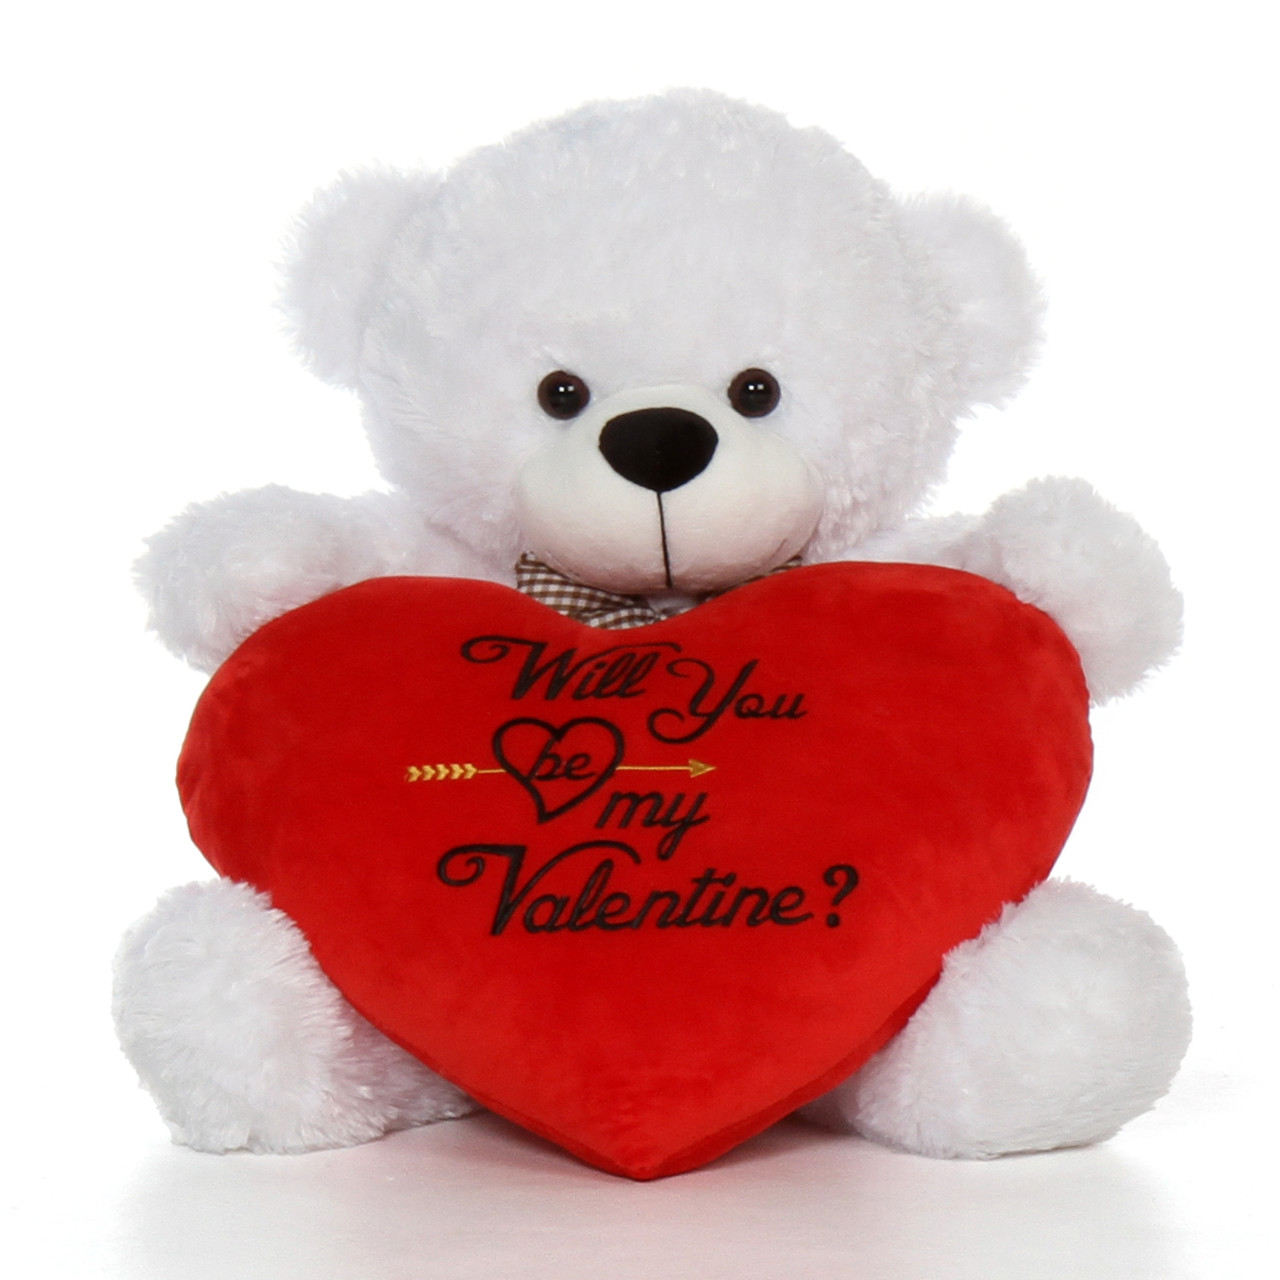 2.5ft White Teddy Bear with Plush Red Heart